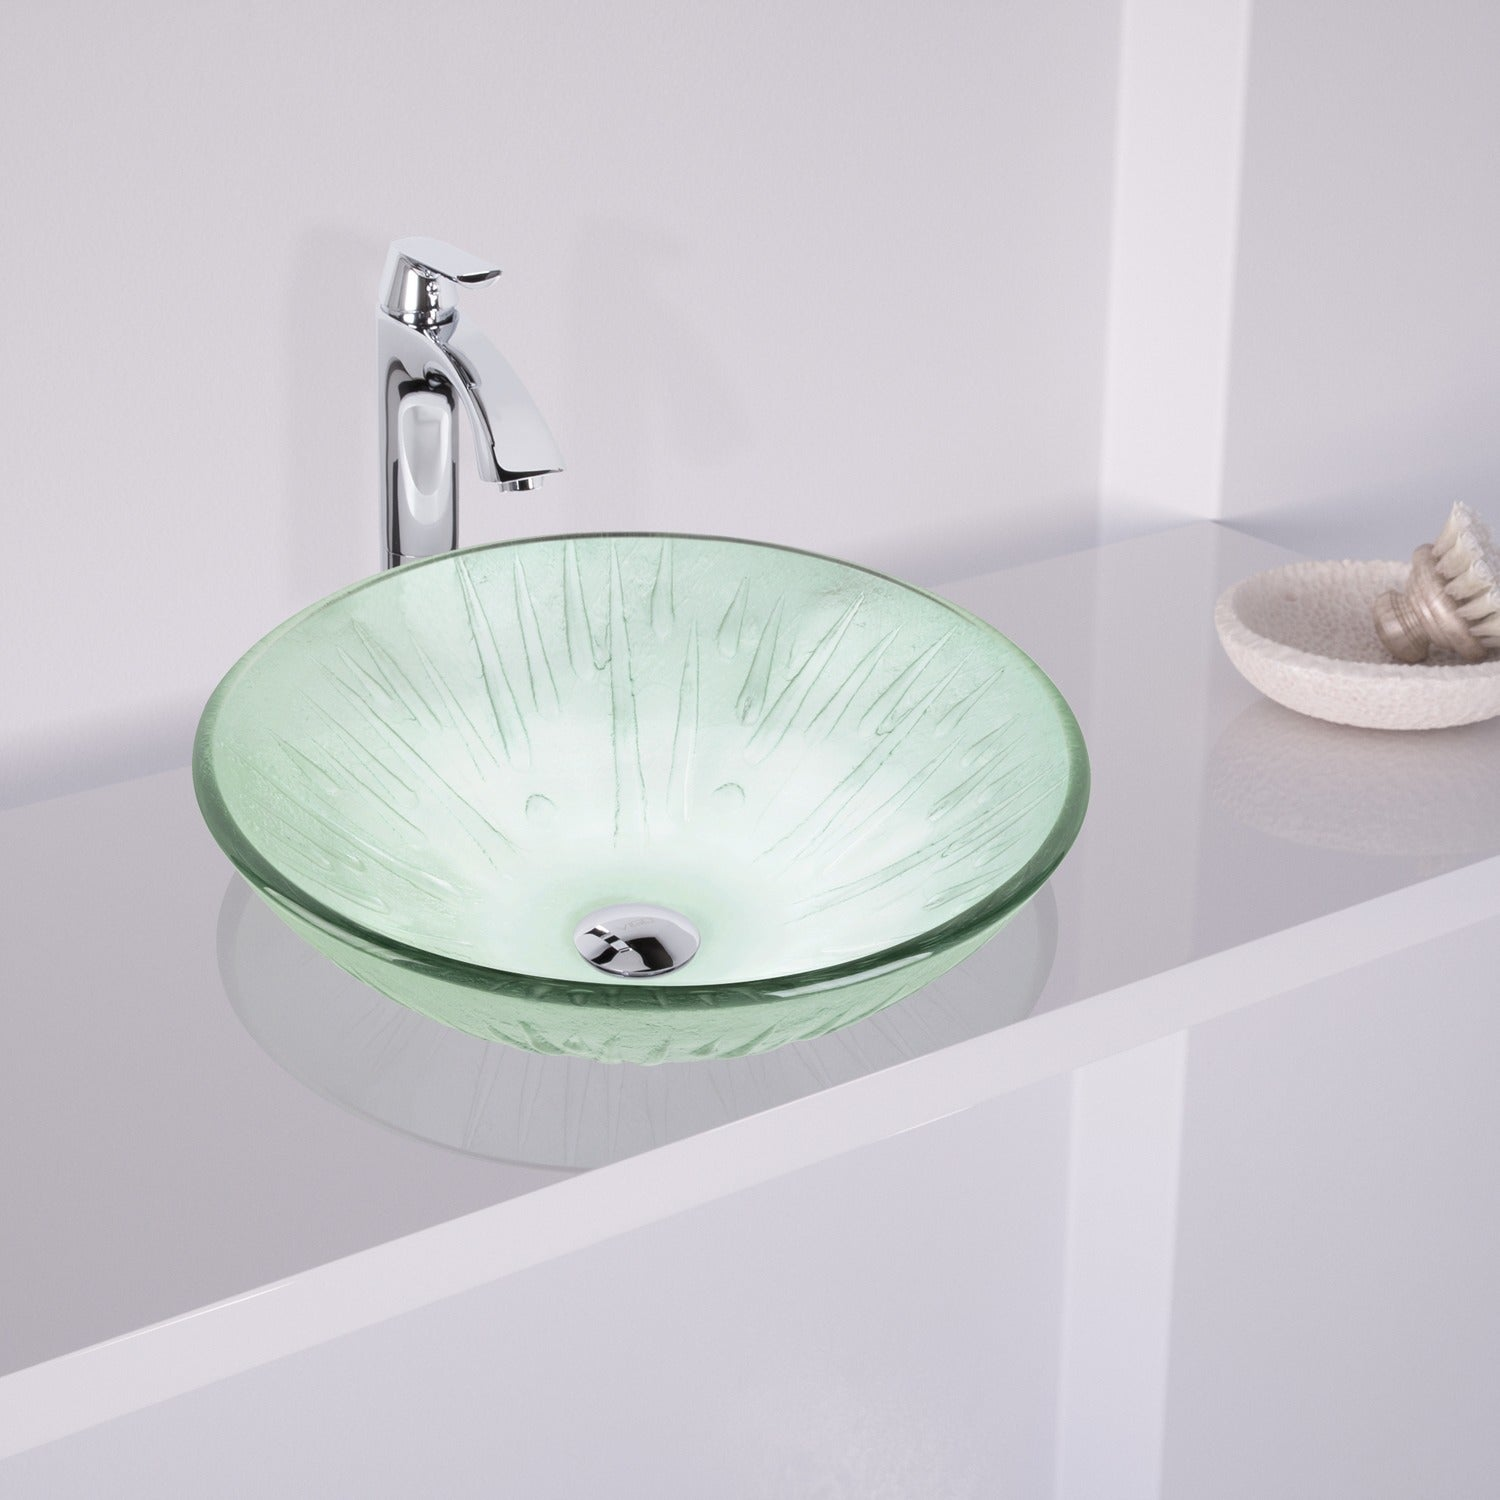 Shop VIGO Icicles Glass Vessel Sink and Faucet Bathroom Set in ...